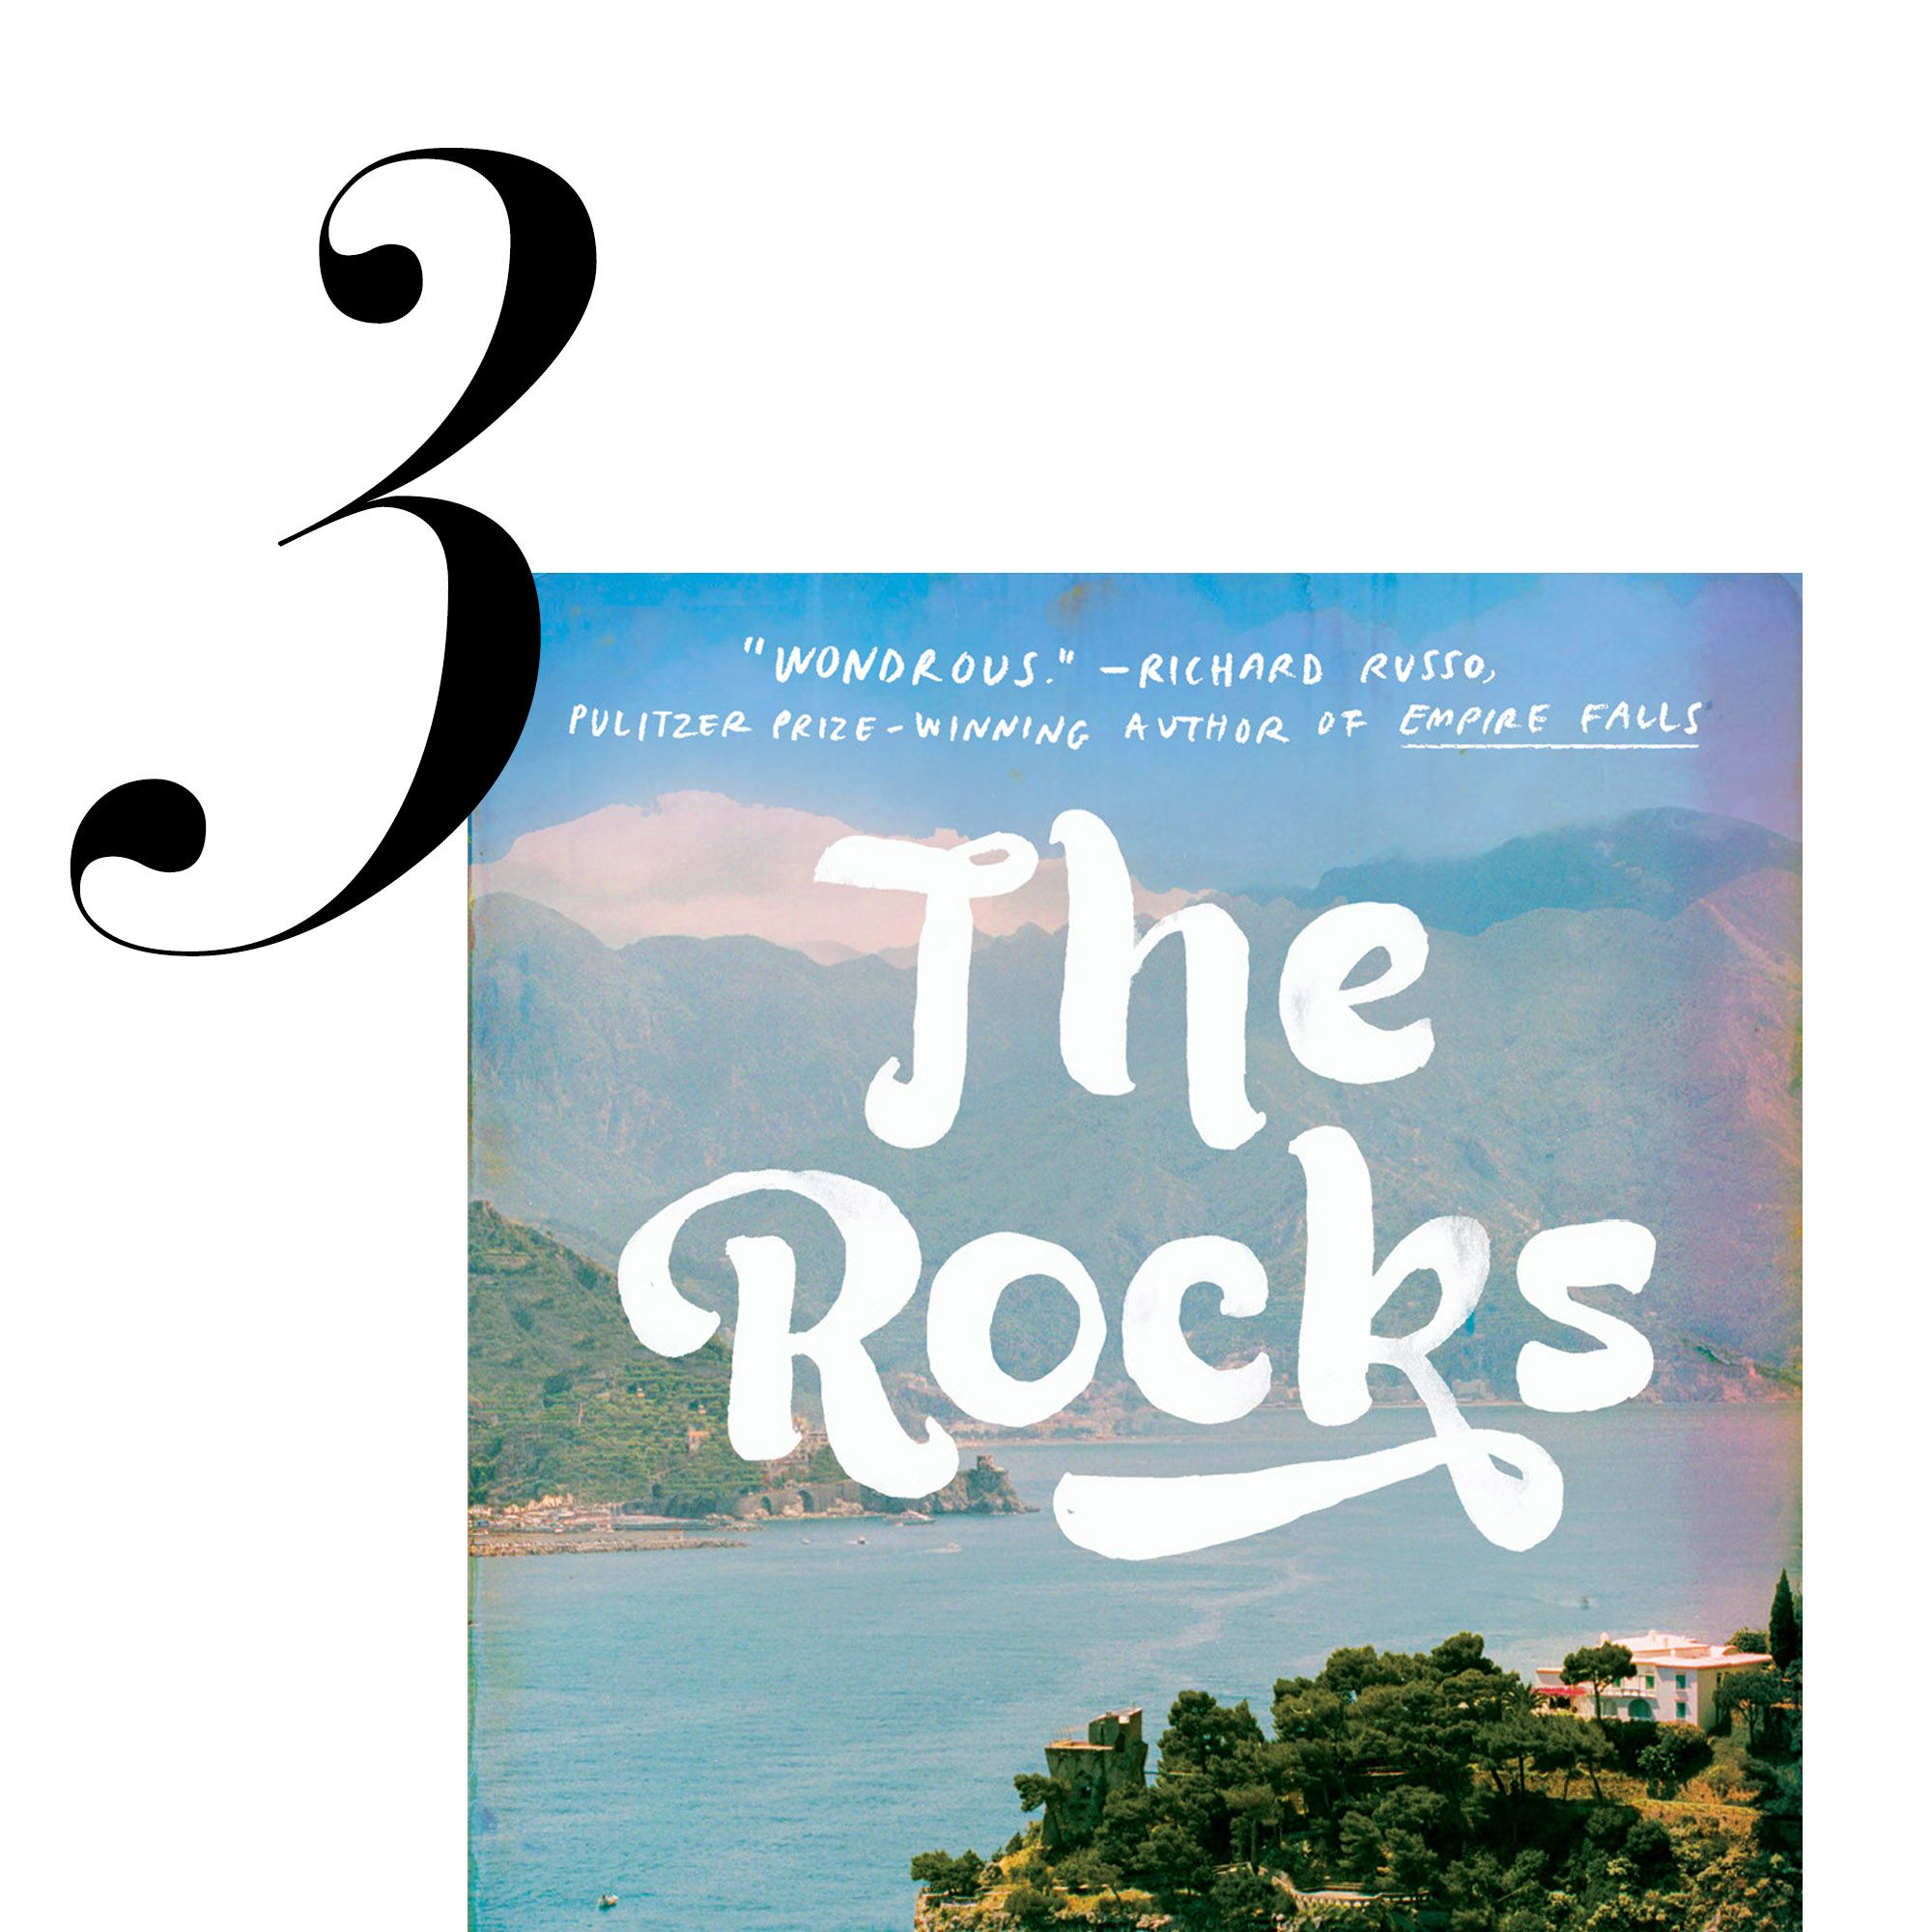 """Loosely based on his own memories of Mediterranean summers in Mallorca, Hollywood screenwriter Peter Nichols's novel <a target=""""_blank"""" href=""""http://www.amazon.com/Rocks-Novel-Peter-Nichols/dp/1594633312/ref=sr_1_1?s=books&amp&#x3B;ie=UTF8&amp&#x3B;qid=1427318530&amp&#x3B;sr=1-1&amp&#x3B;keywords=THE+ROCKS+by+Peter+Nichols""""><em>The Rocks</em></a> is a double love story told in reverse. This page-turner will transport readers to the sunny community of expats at a glamorous seaside resort, where mystery, love, and family legacy are all fiercely intertwined. <em>Out with Random House May 26.</em>"""